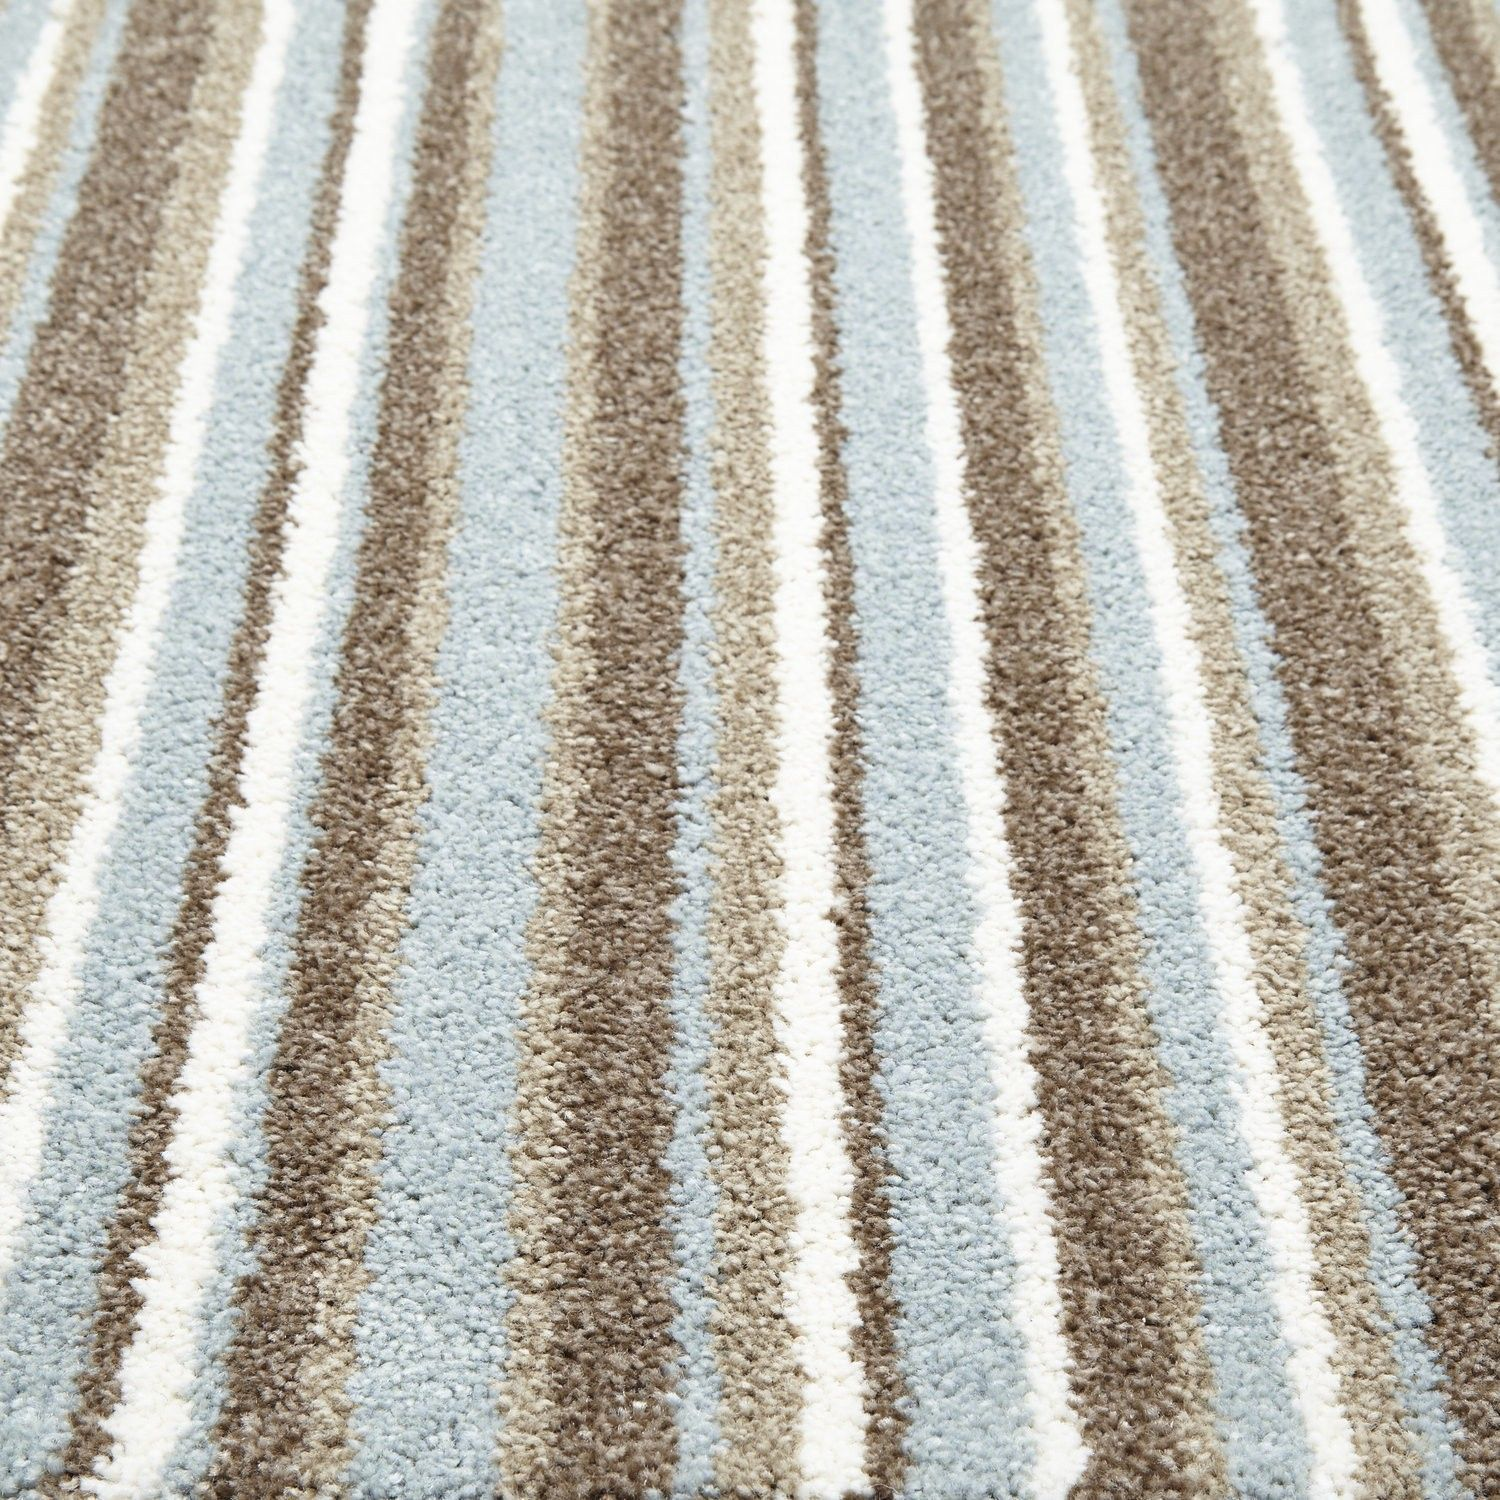 Opinion you striped carpet pictures join